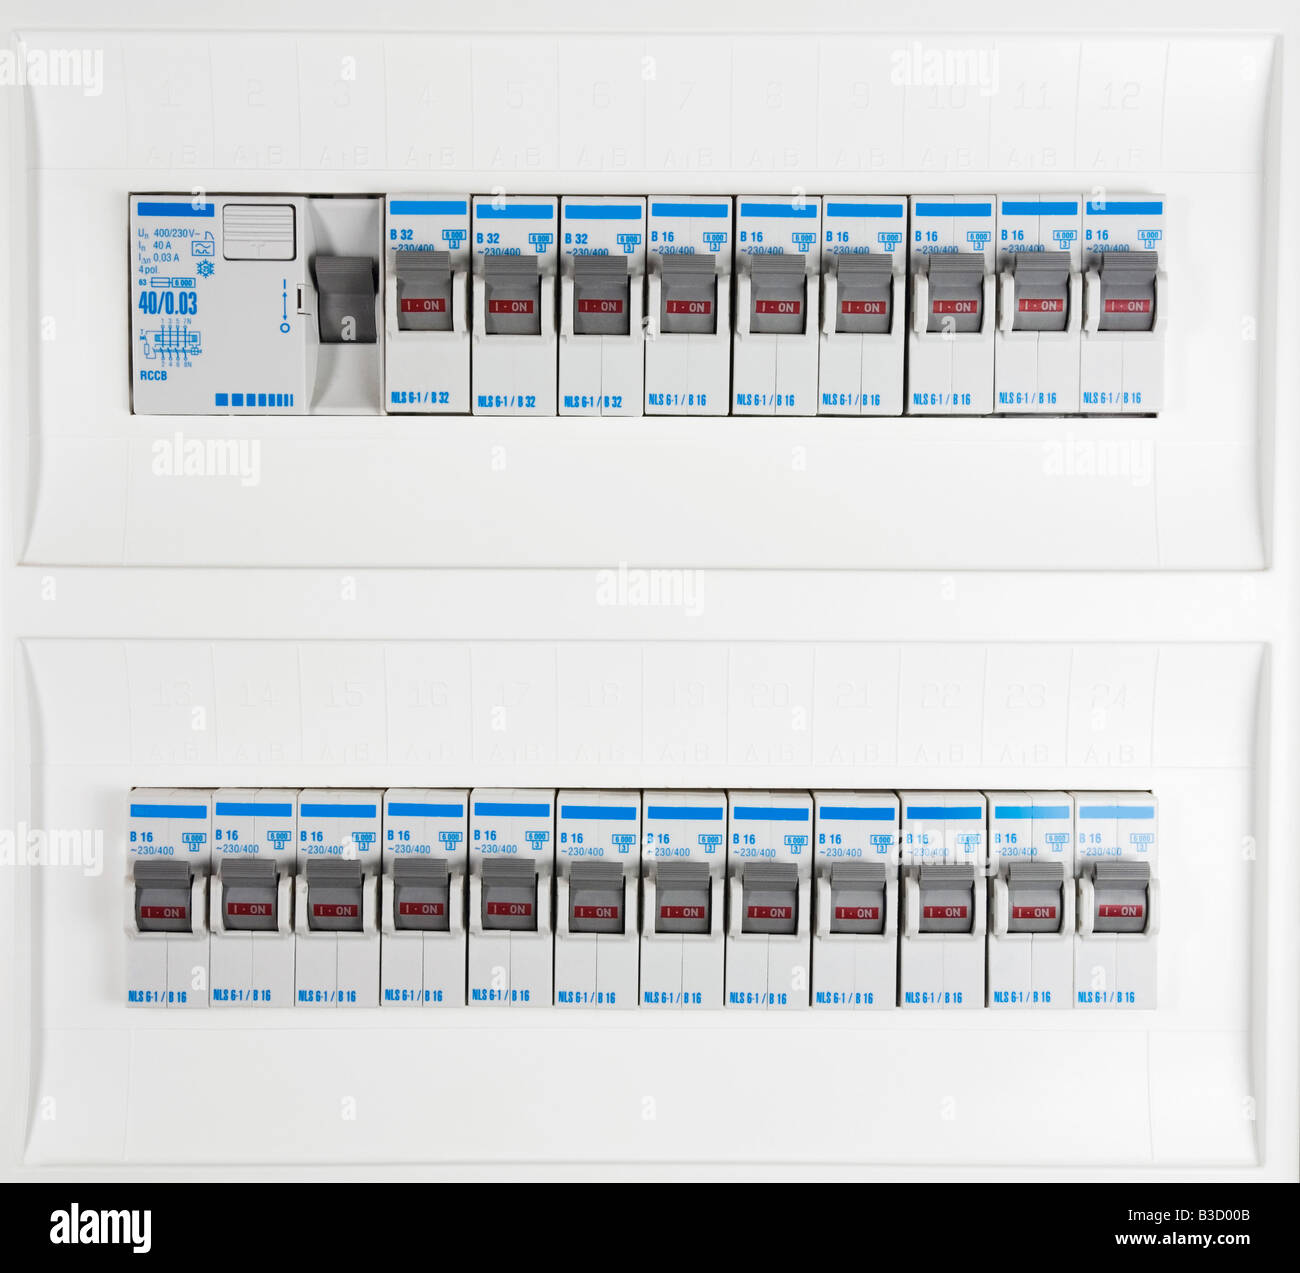 Fuse Box Home Stock Photos Images Alamy 1 Series Full Frame Image